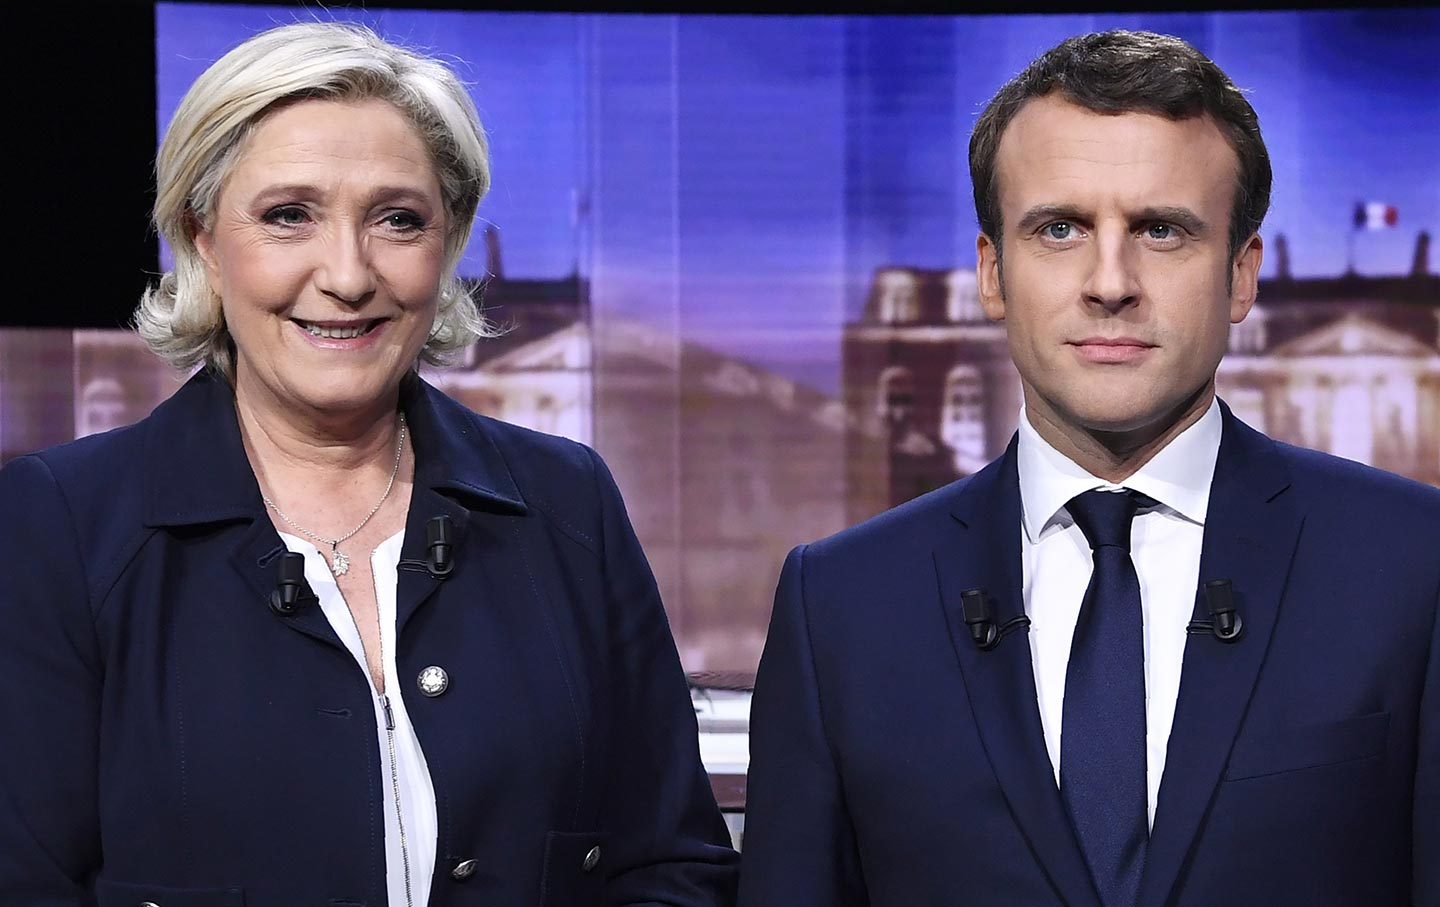 France elections 2017 live - Le Pen And Macron